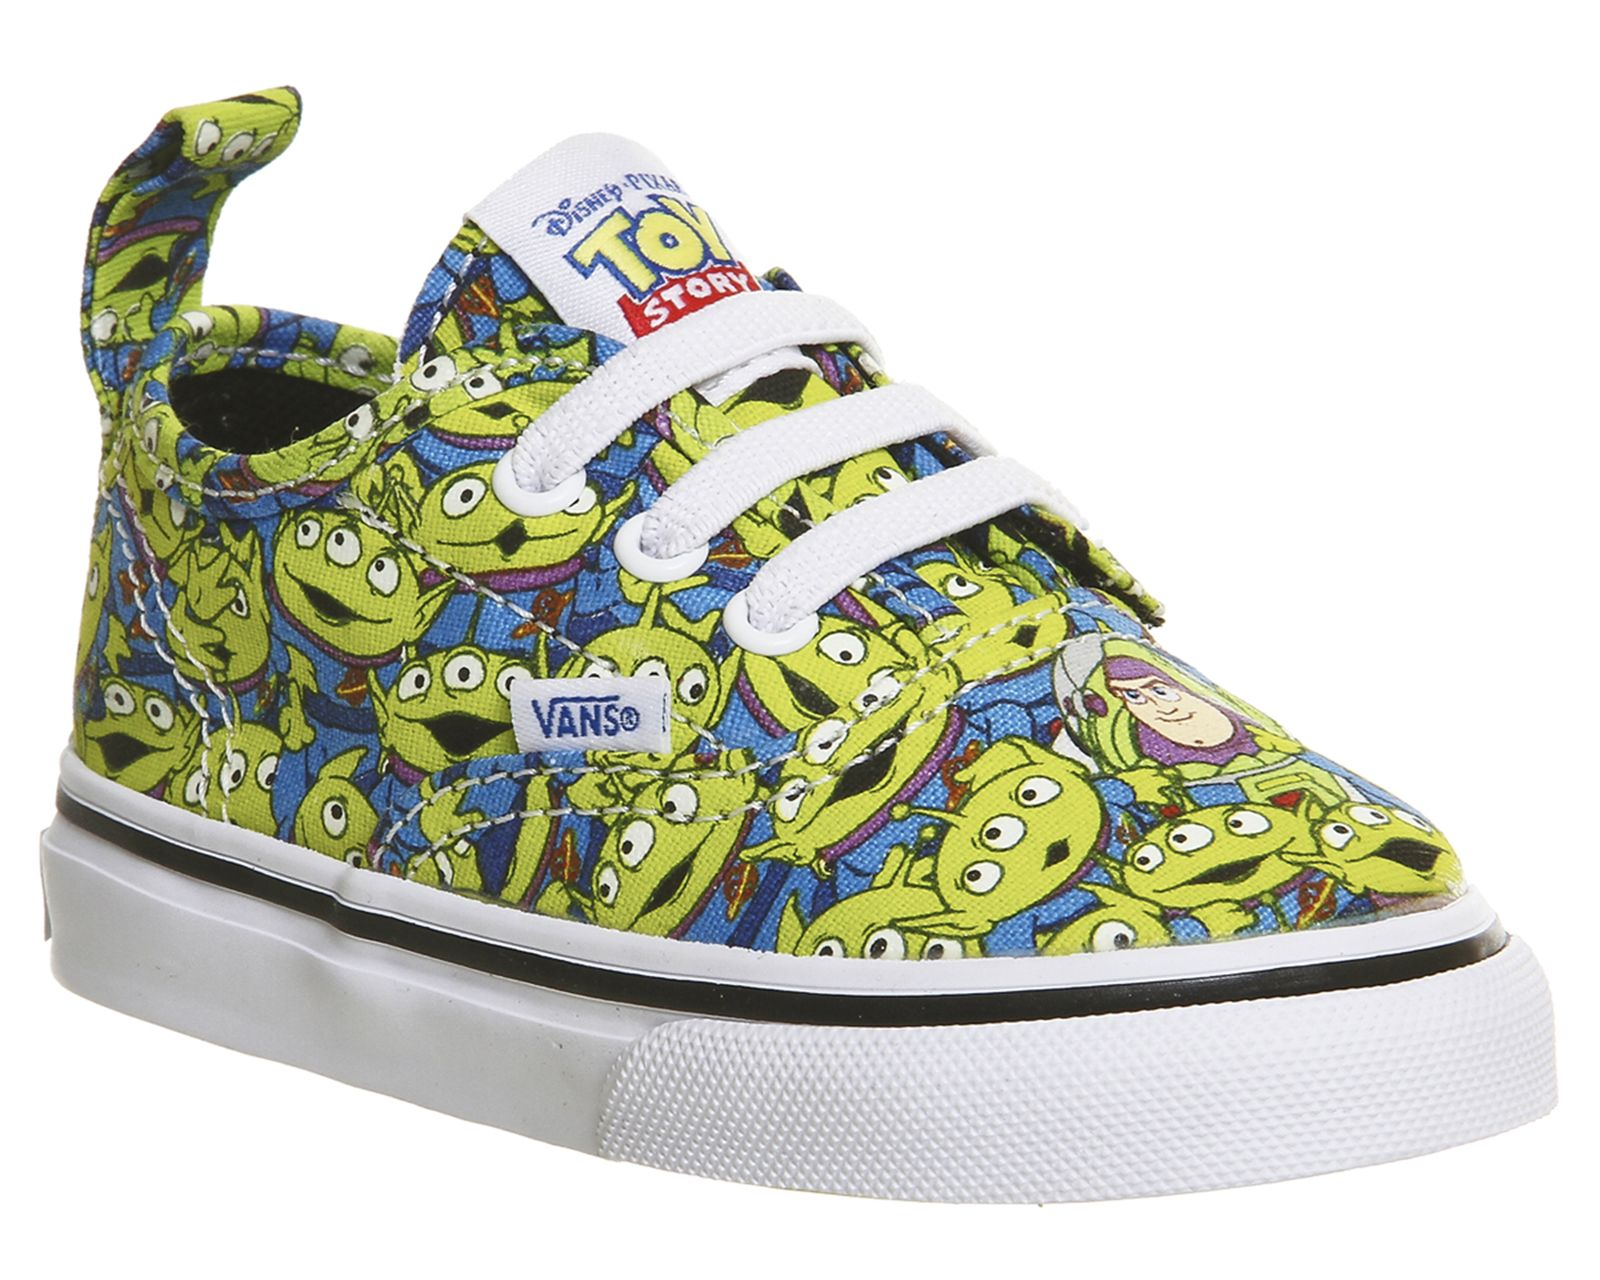 Vans Toy Story Slip On gris